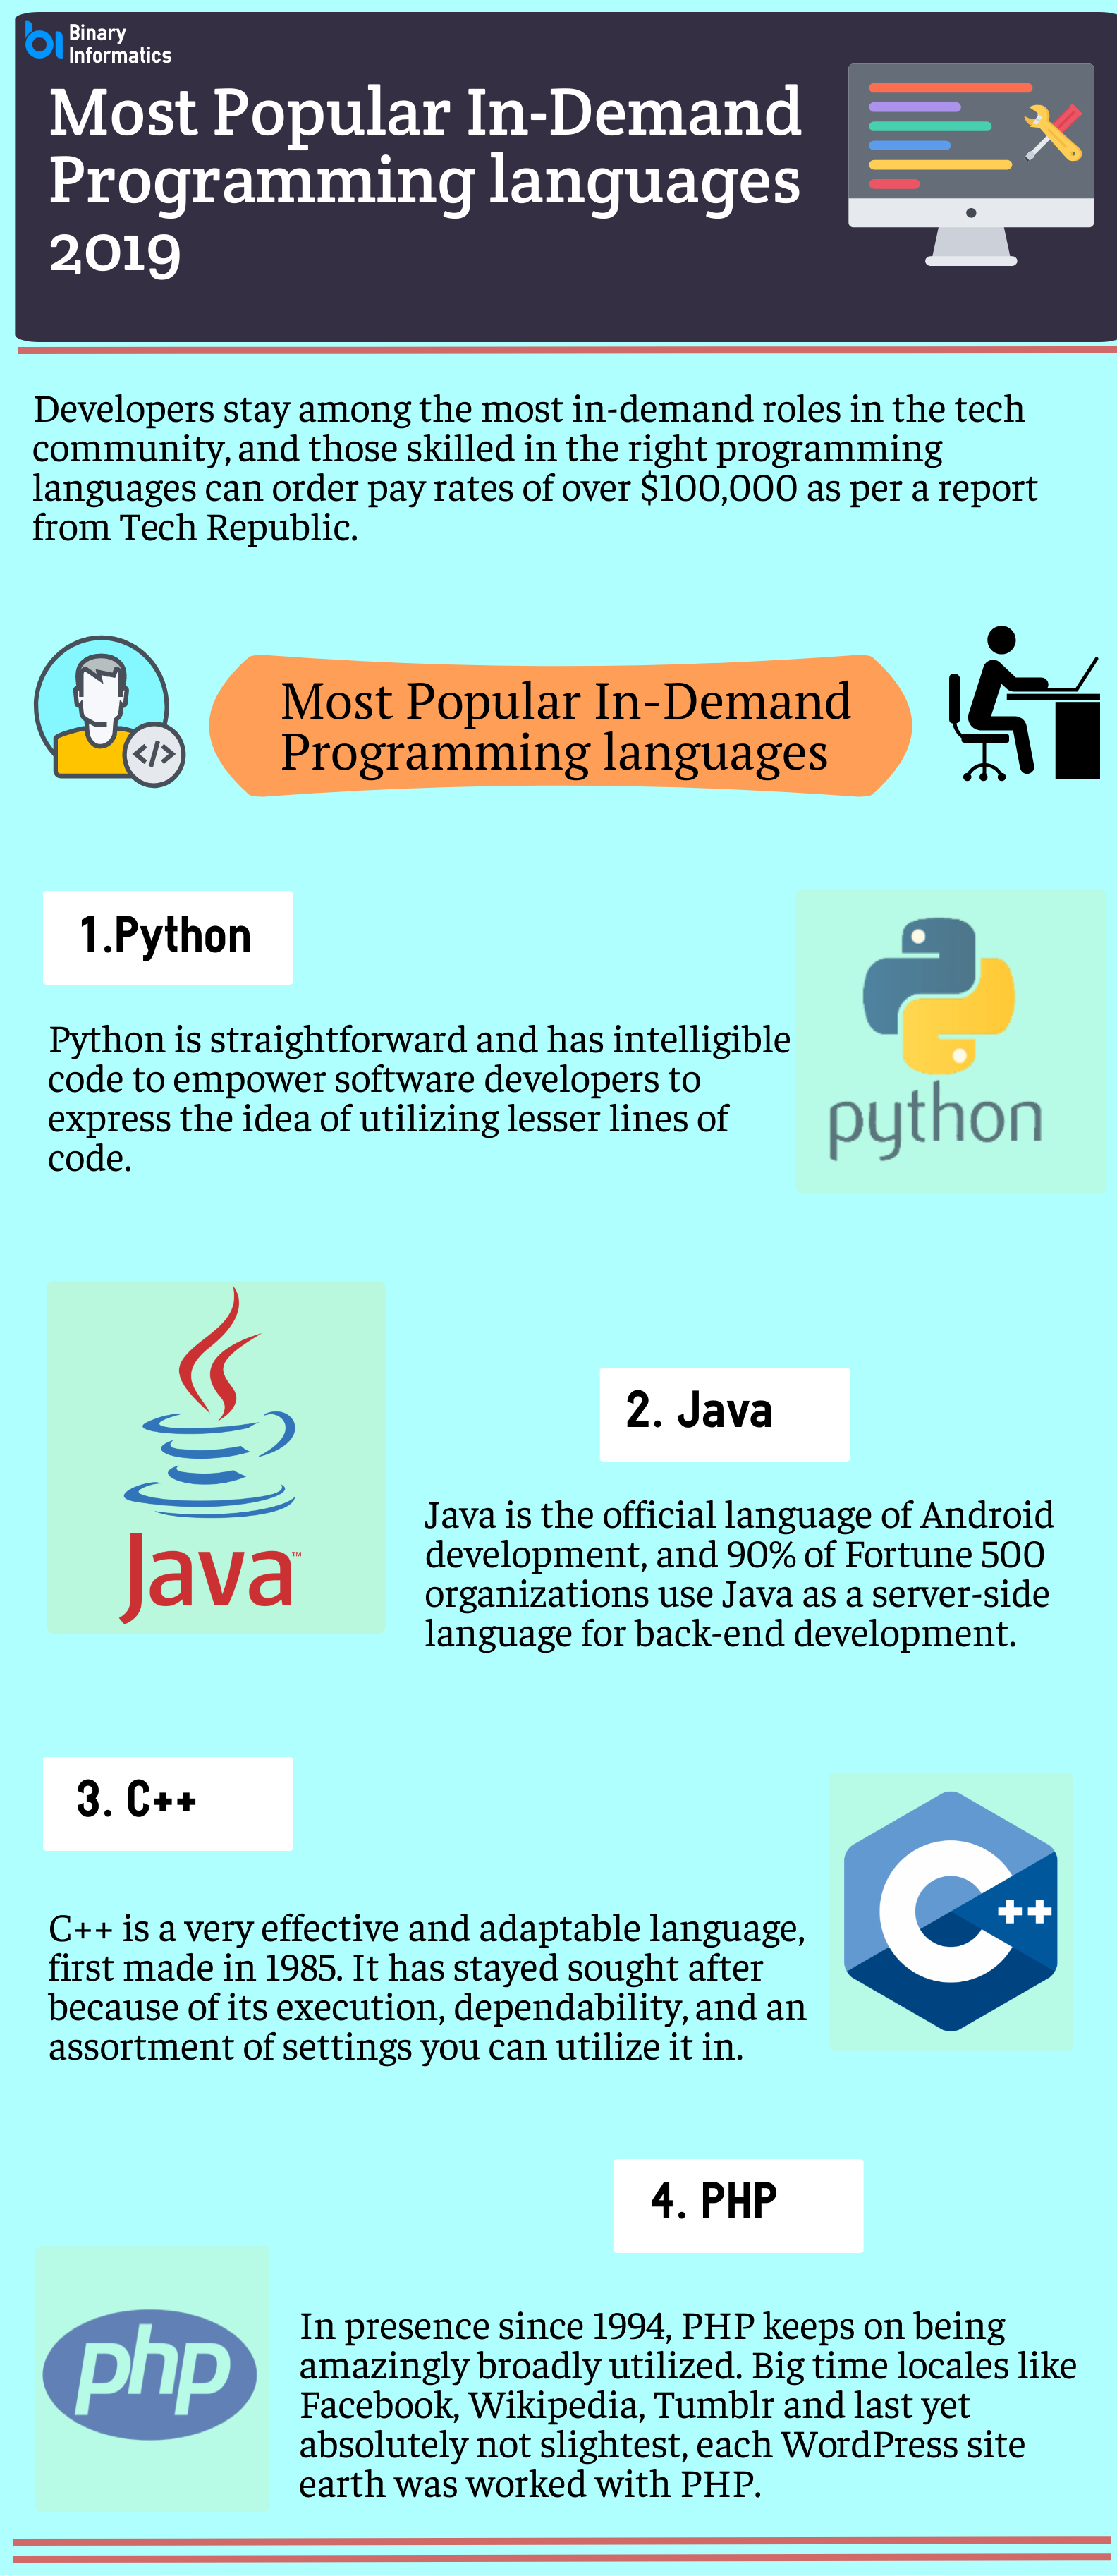 Most Popular In-Demand Programming languages 2019- Here's the list